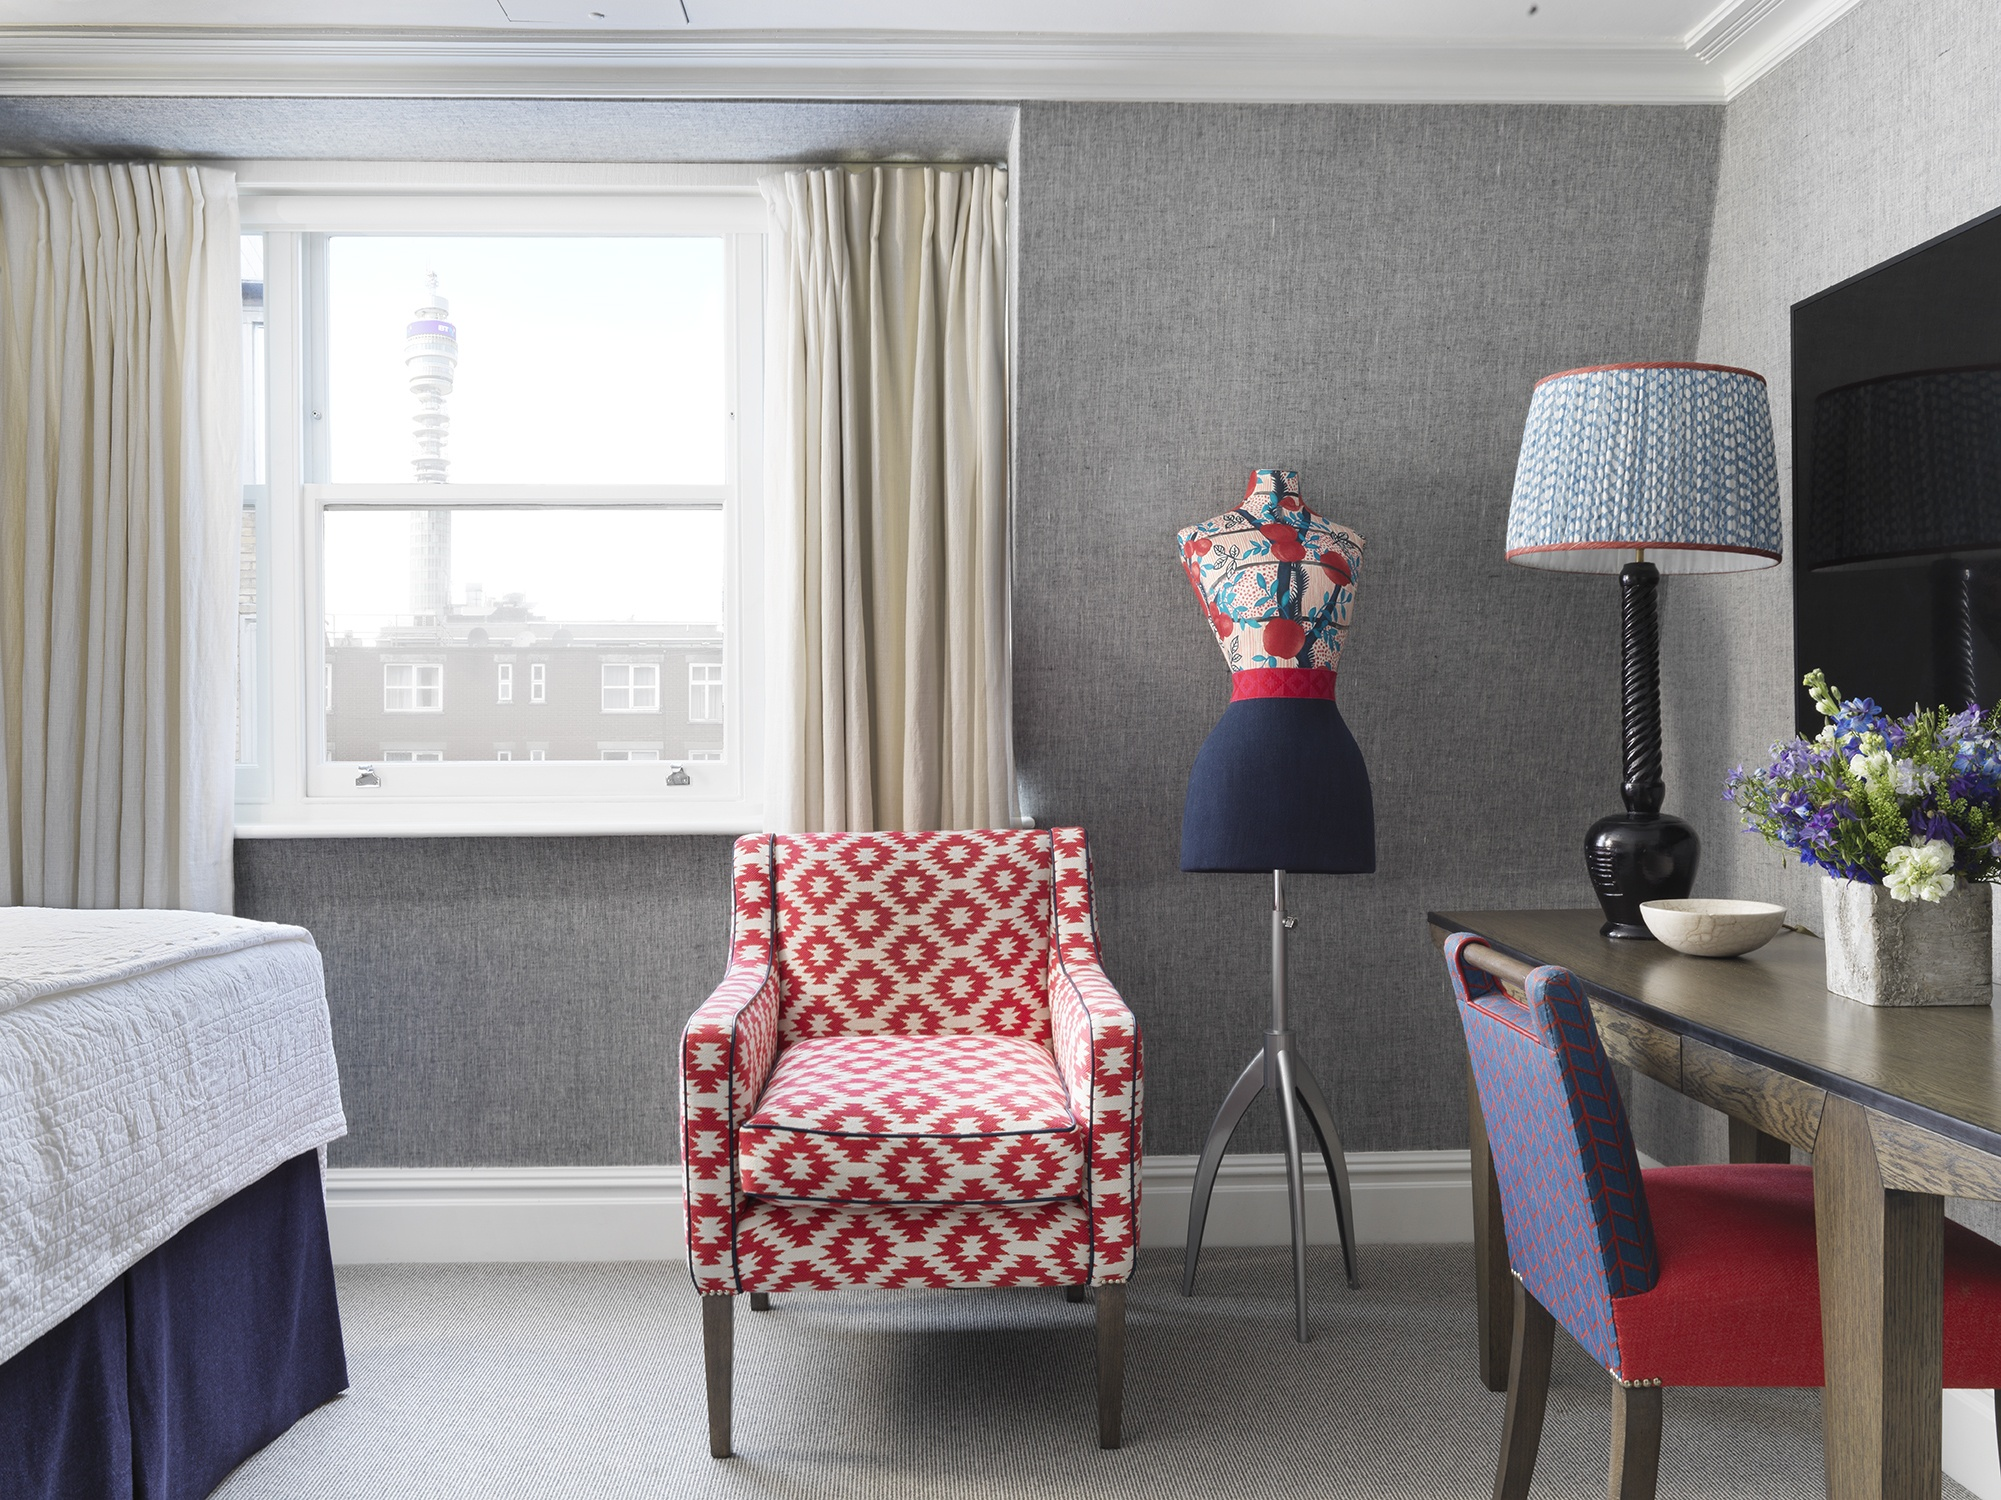 Fabulous Creating Interest In Small Rooms At Charlotte Street Hotel Machost Co Dining Chair Design Ideas Machostcouk